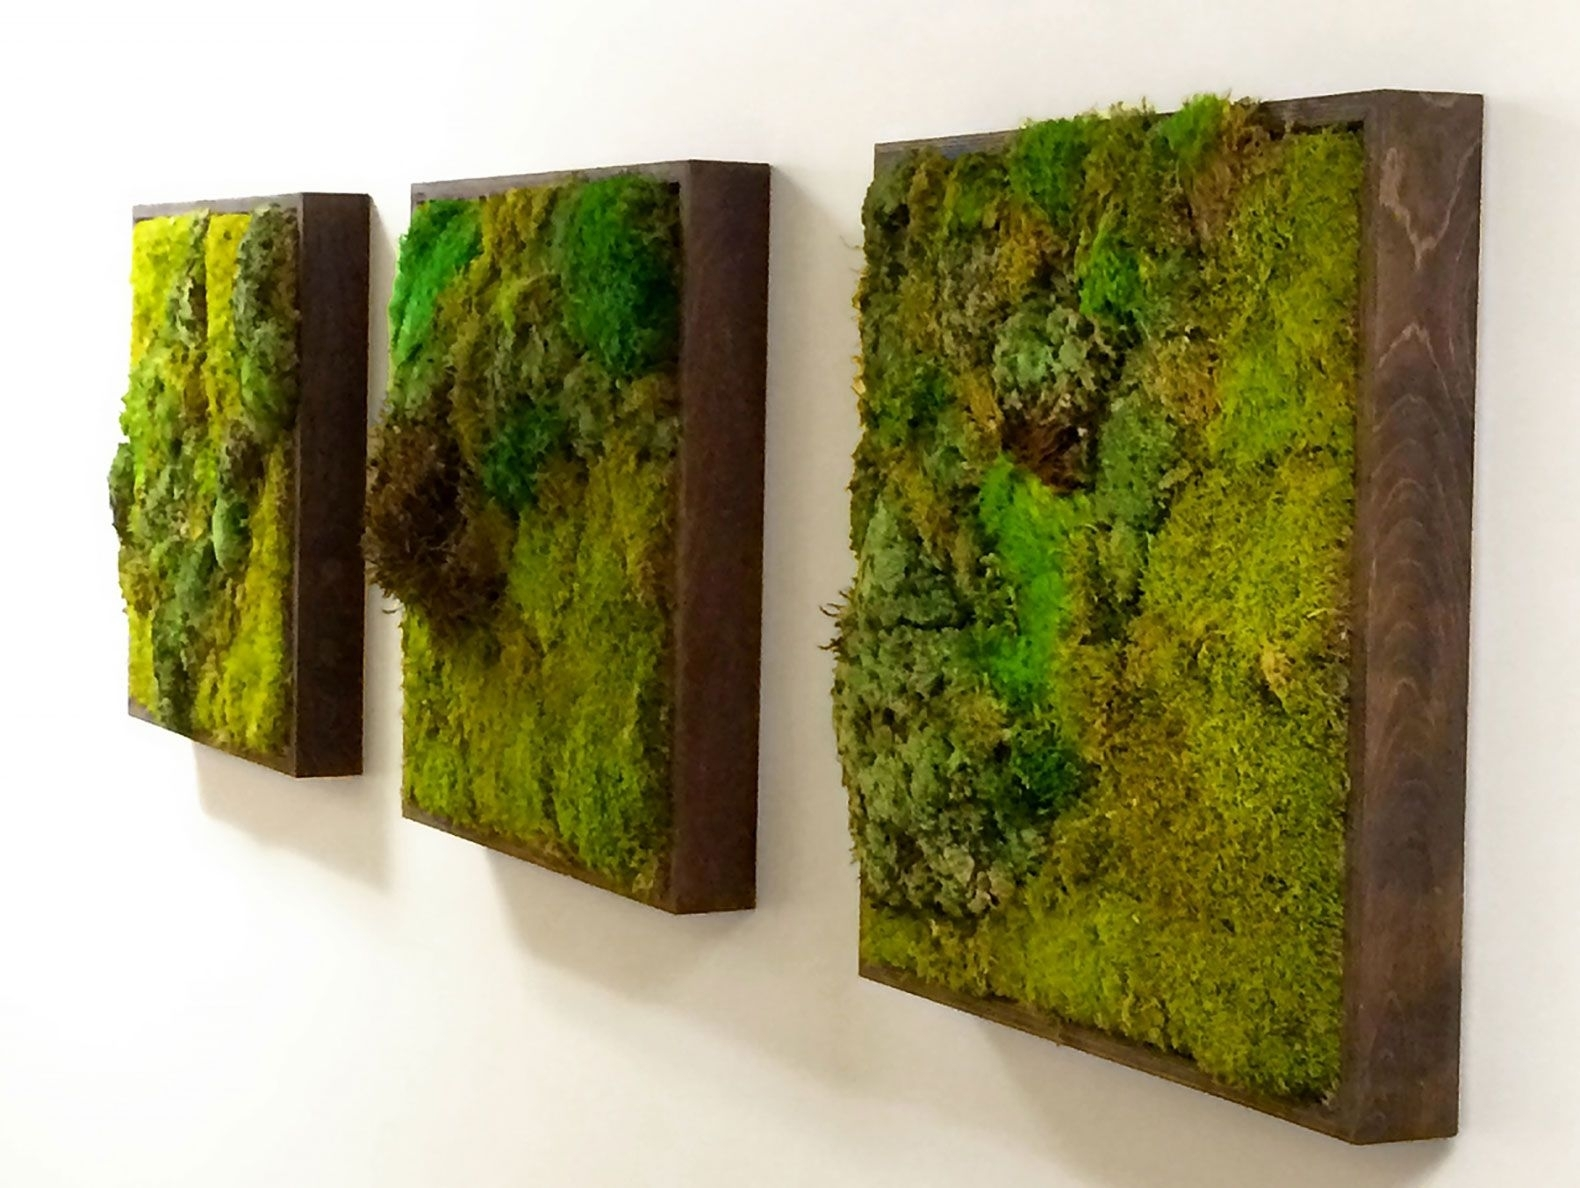 Moss Walls: The Newest Trend In Biophilic Interiors | Moss Wall Intended For 2018 Green Wall Accents (View 3 of 15)